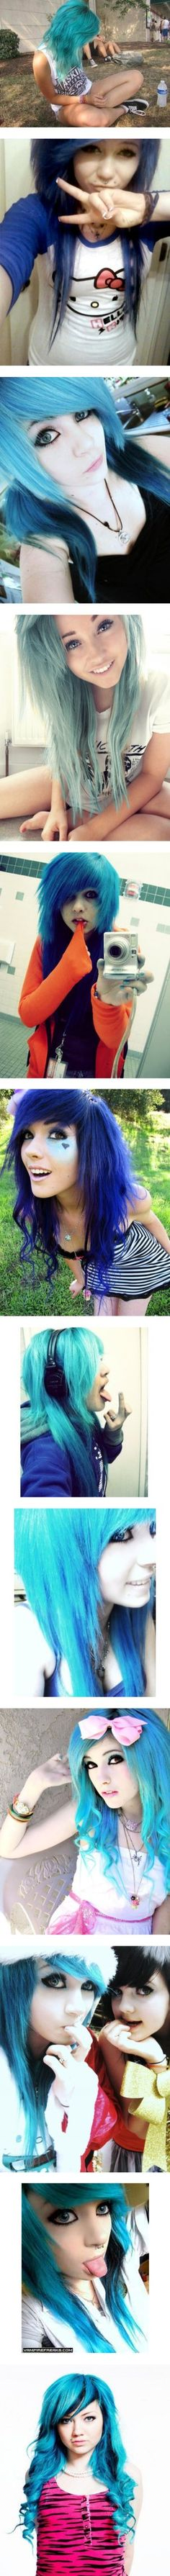 """˚ ˛ ˚ ˛ • ℬlue ℬoo ˚ ˛ ˚ ˛ •"" by bmth-em0freakx on Polyvore i love all these hair styles"